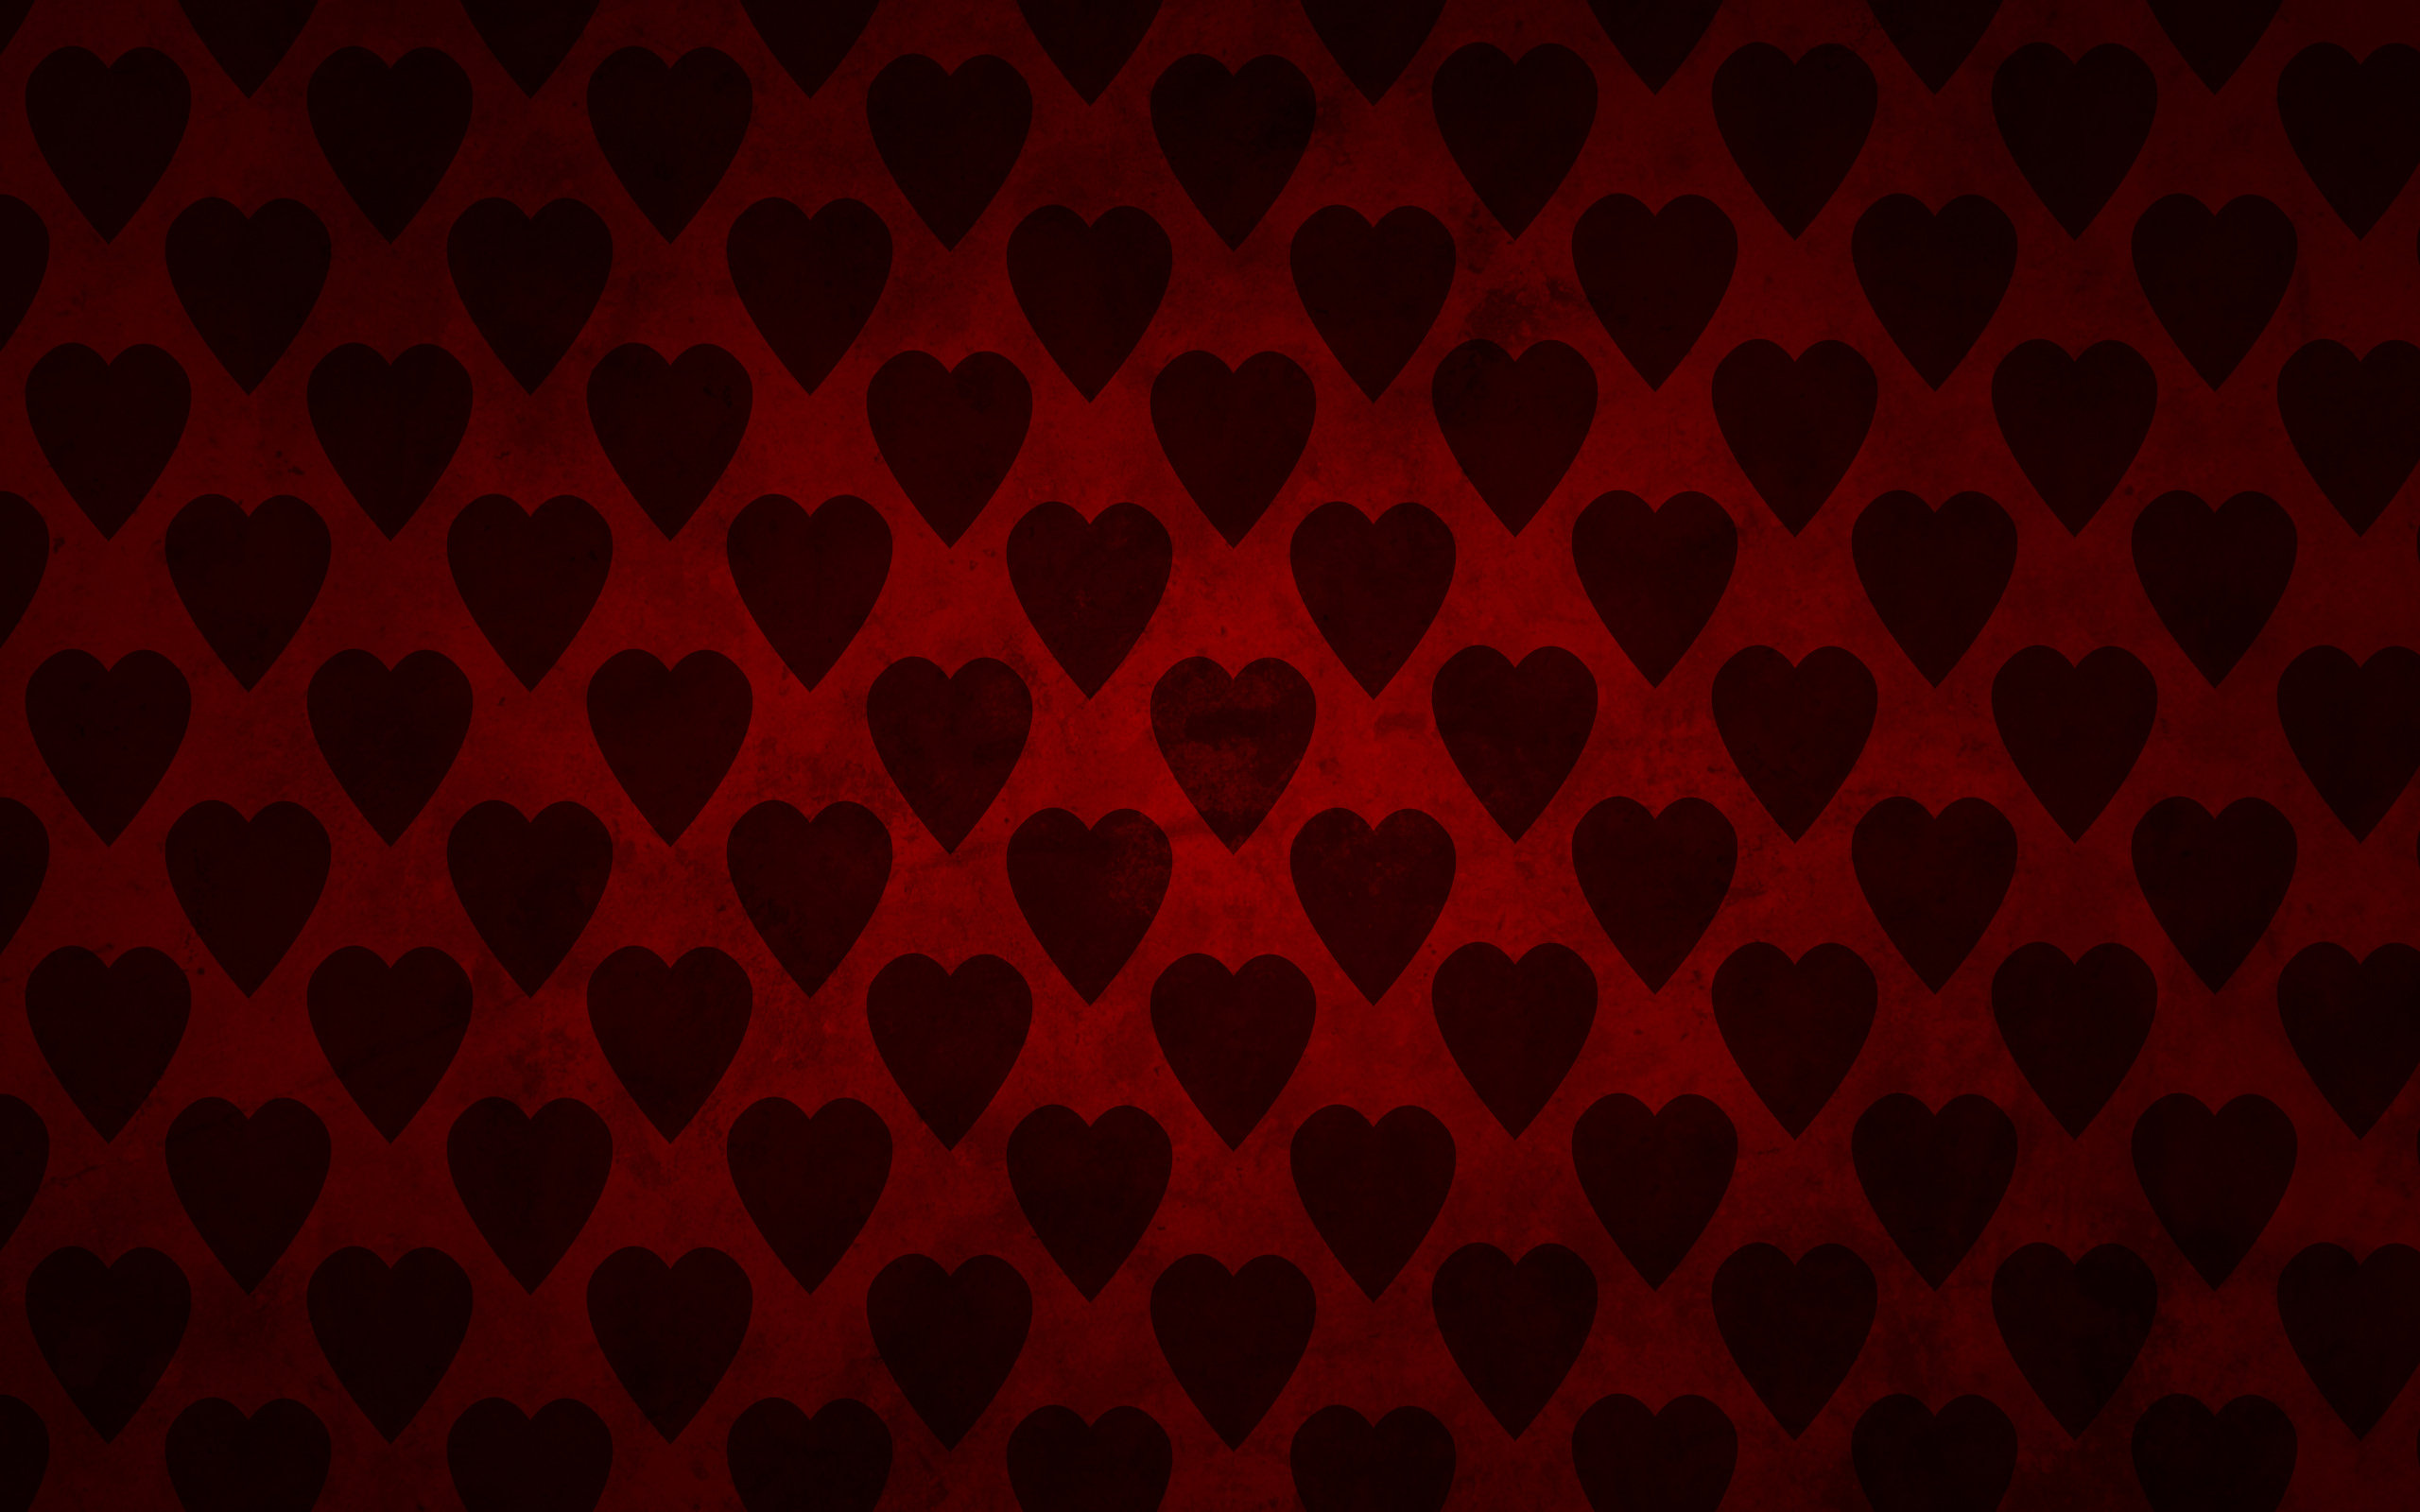 Android 3d Live Wallpaper Maker Download Queen Of Hearts Wallpaper Gallery